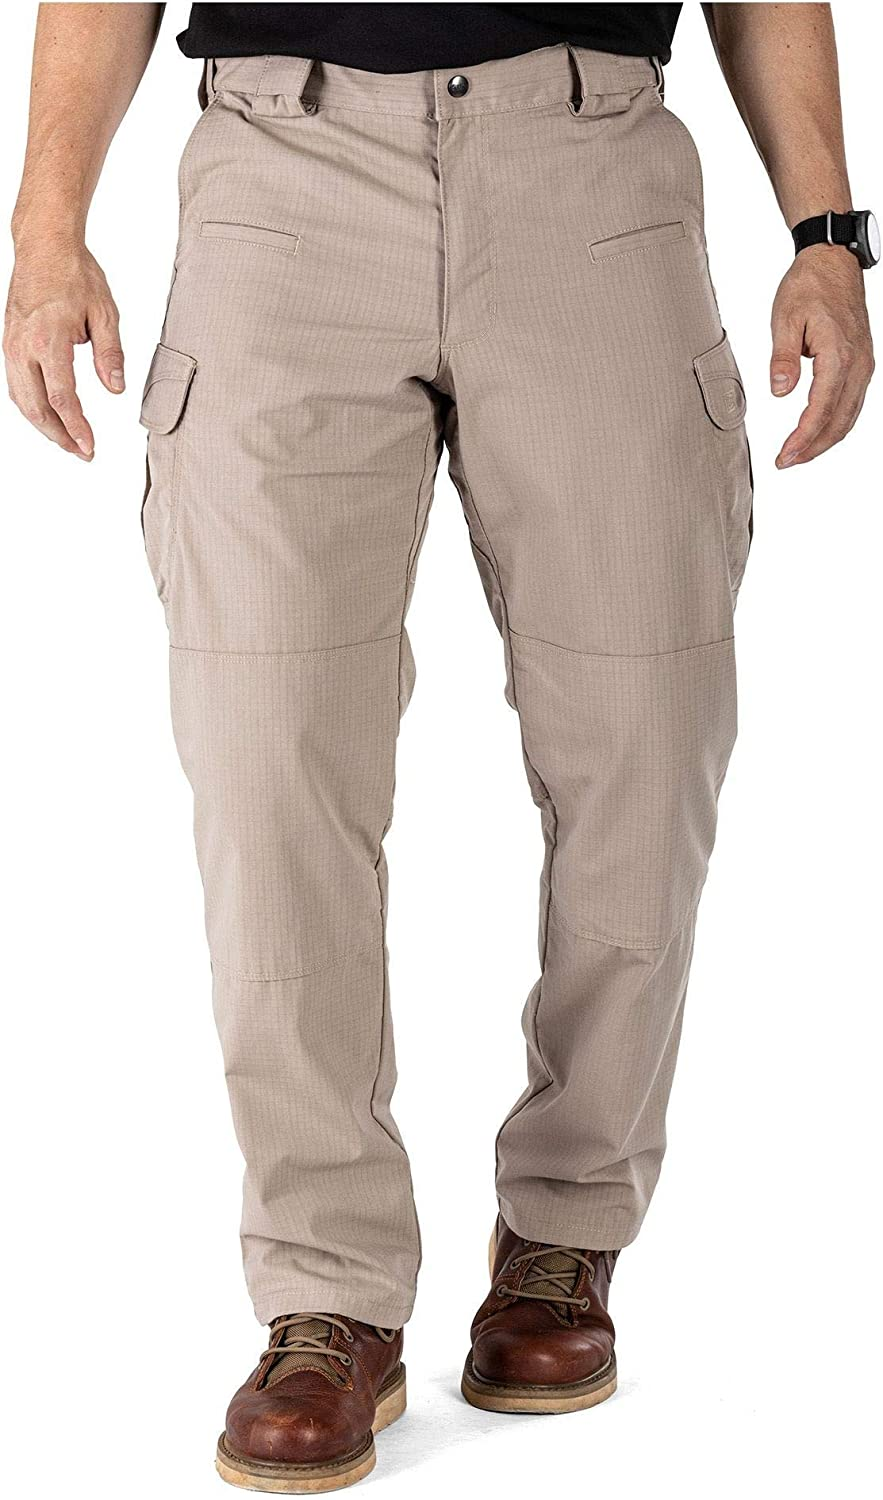 5.11 Tactical Mens Stryke Operator Uniform Pants w/Flex-Tac Mechanical Stretch, Style 74369